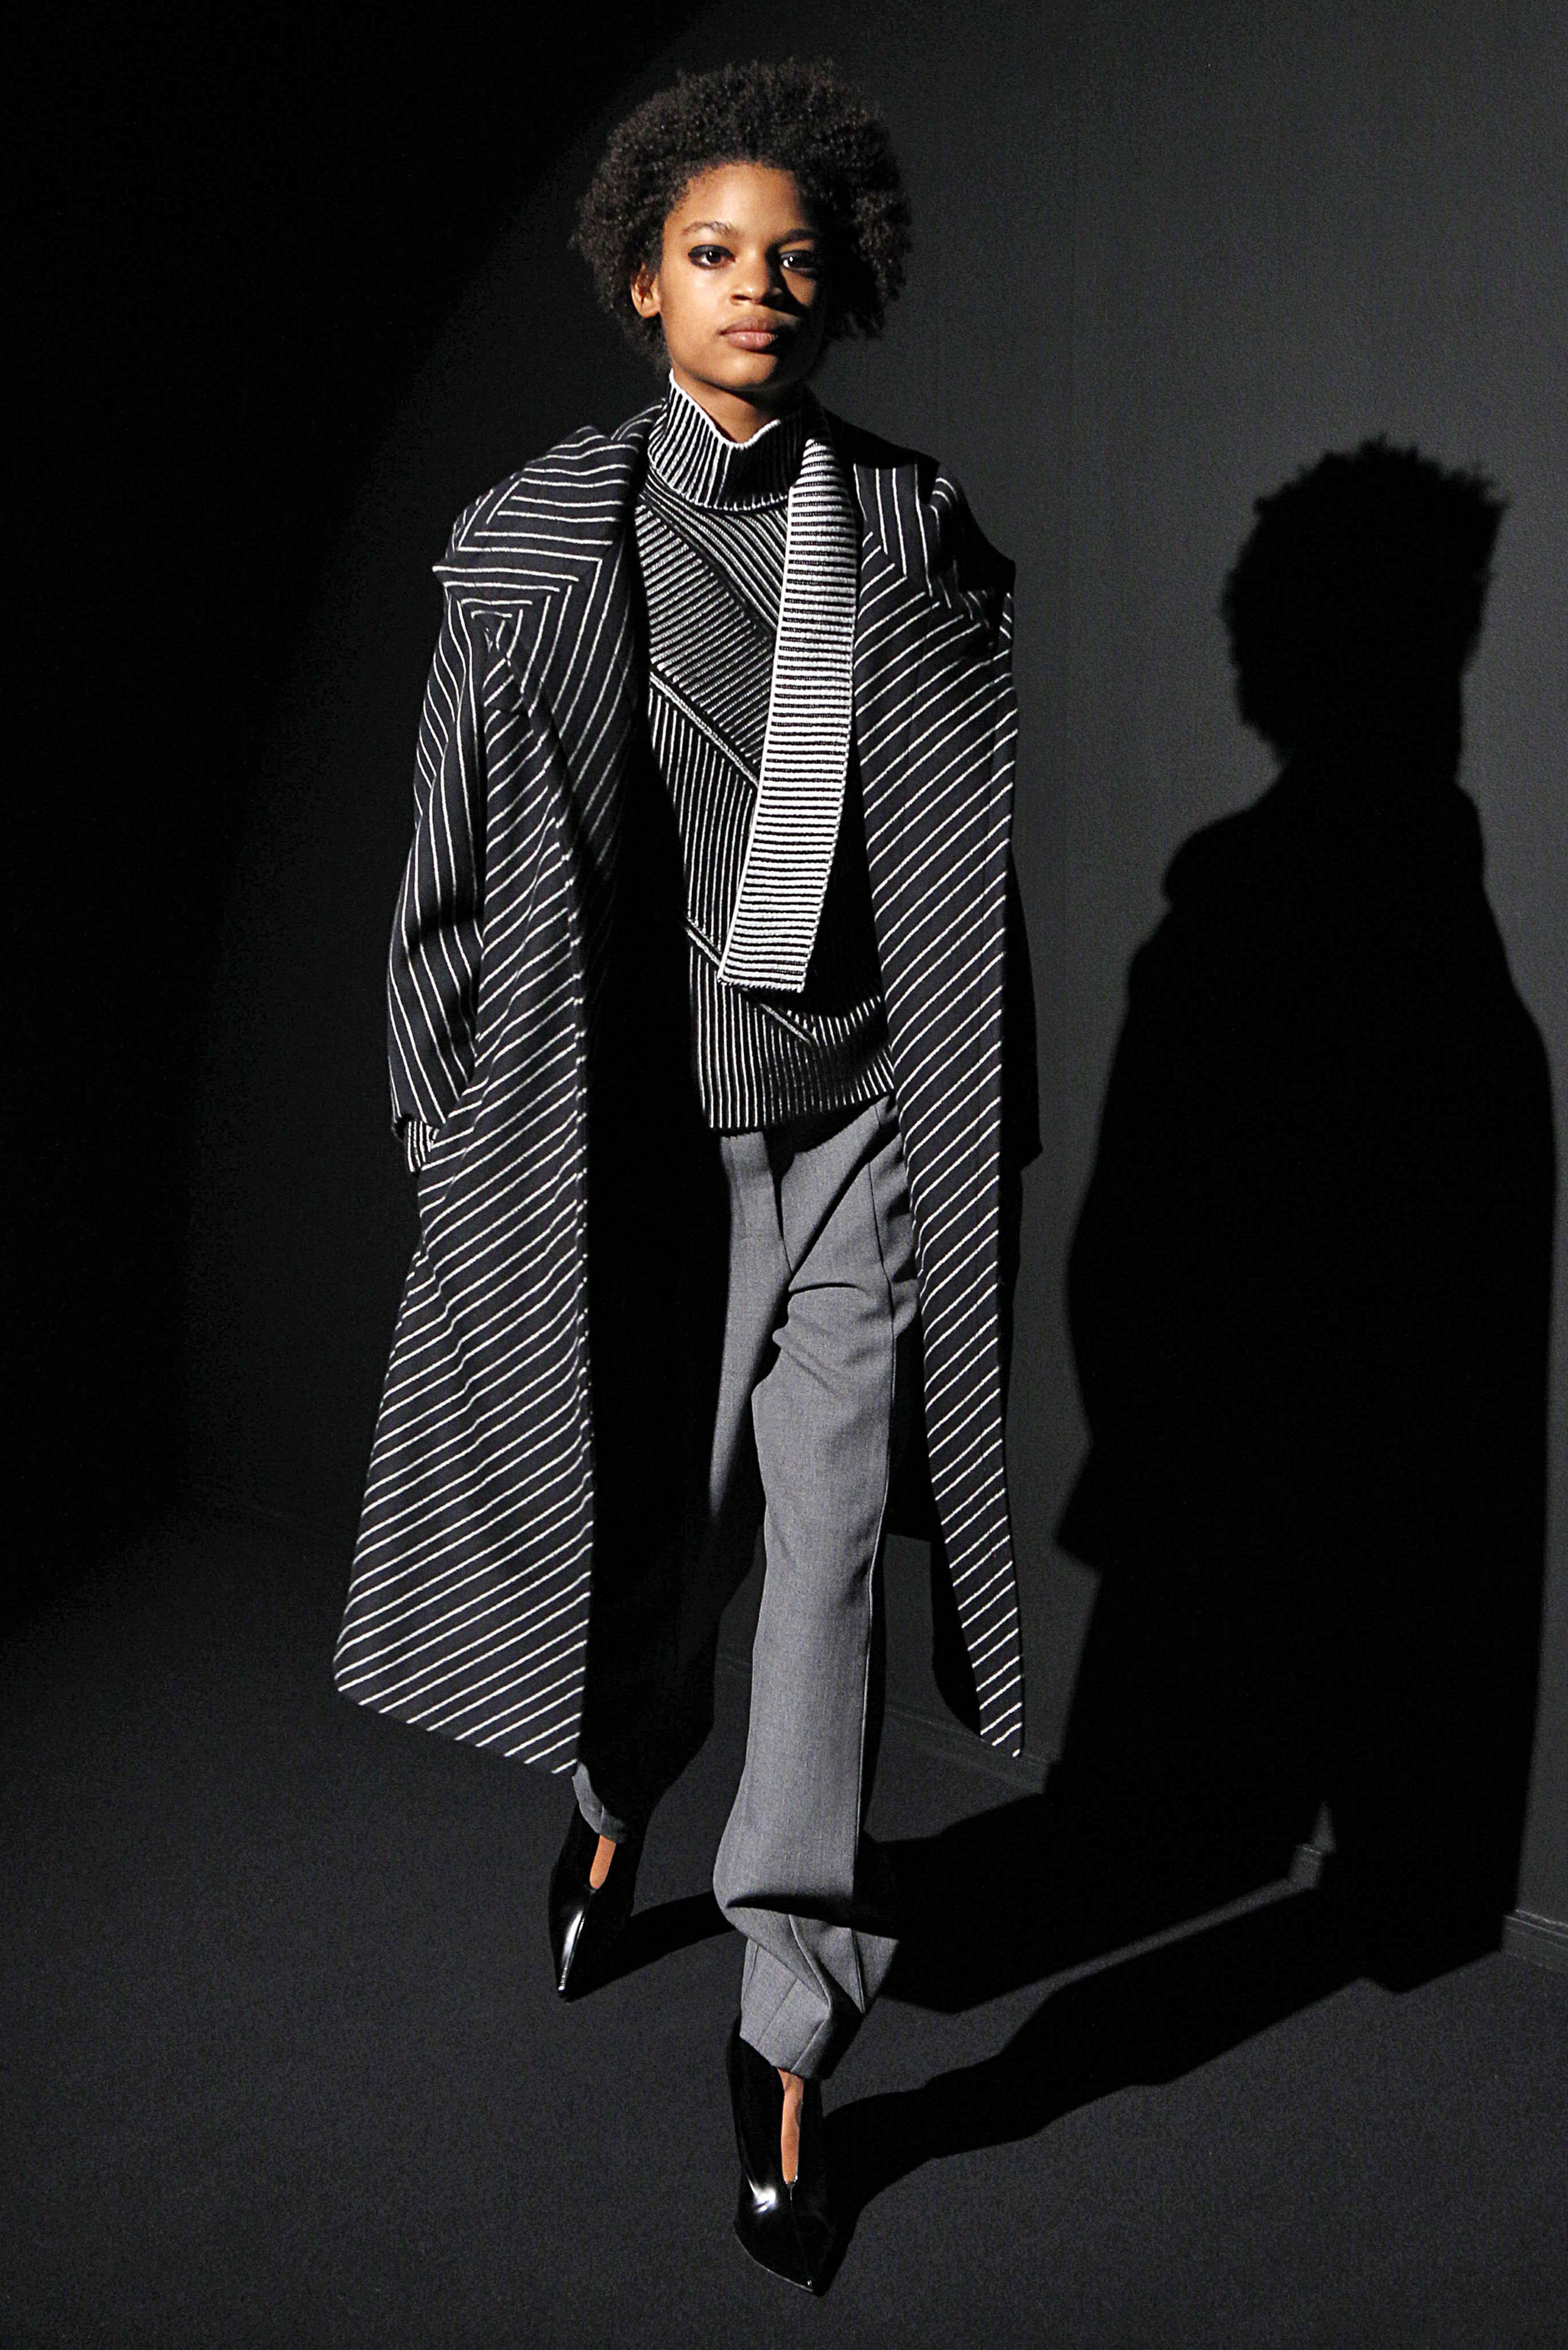 Look 10 Black/white striped wool coat over black/white knit top with grey wool twill pant.